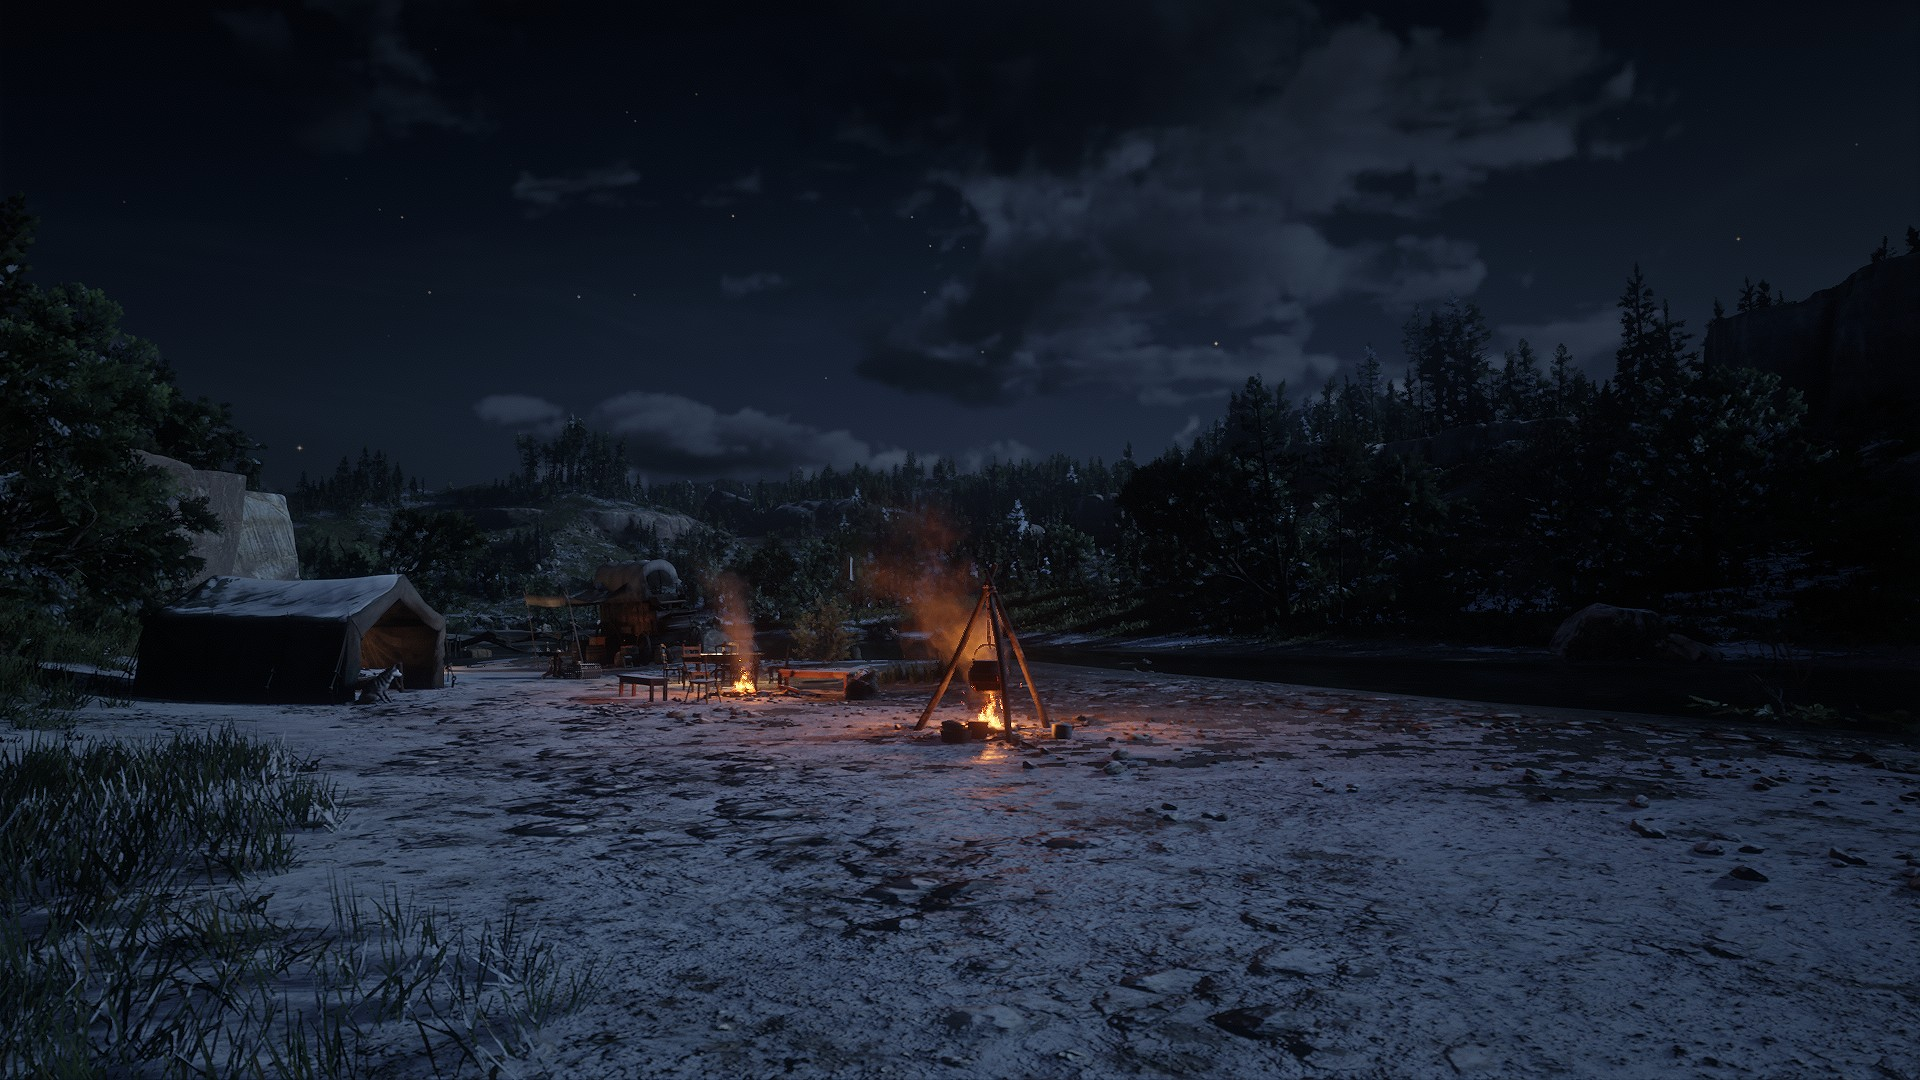 Red Dead Redemption 2 Brings Holiday Cheer With New Winter Update, With Snow And Gifts